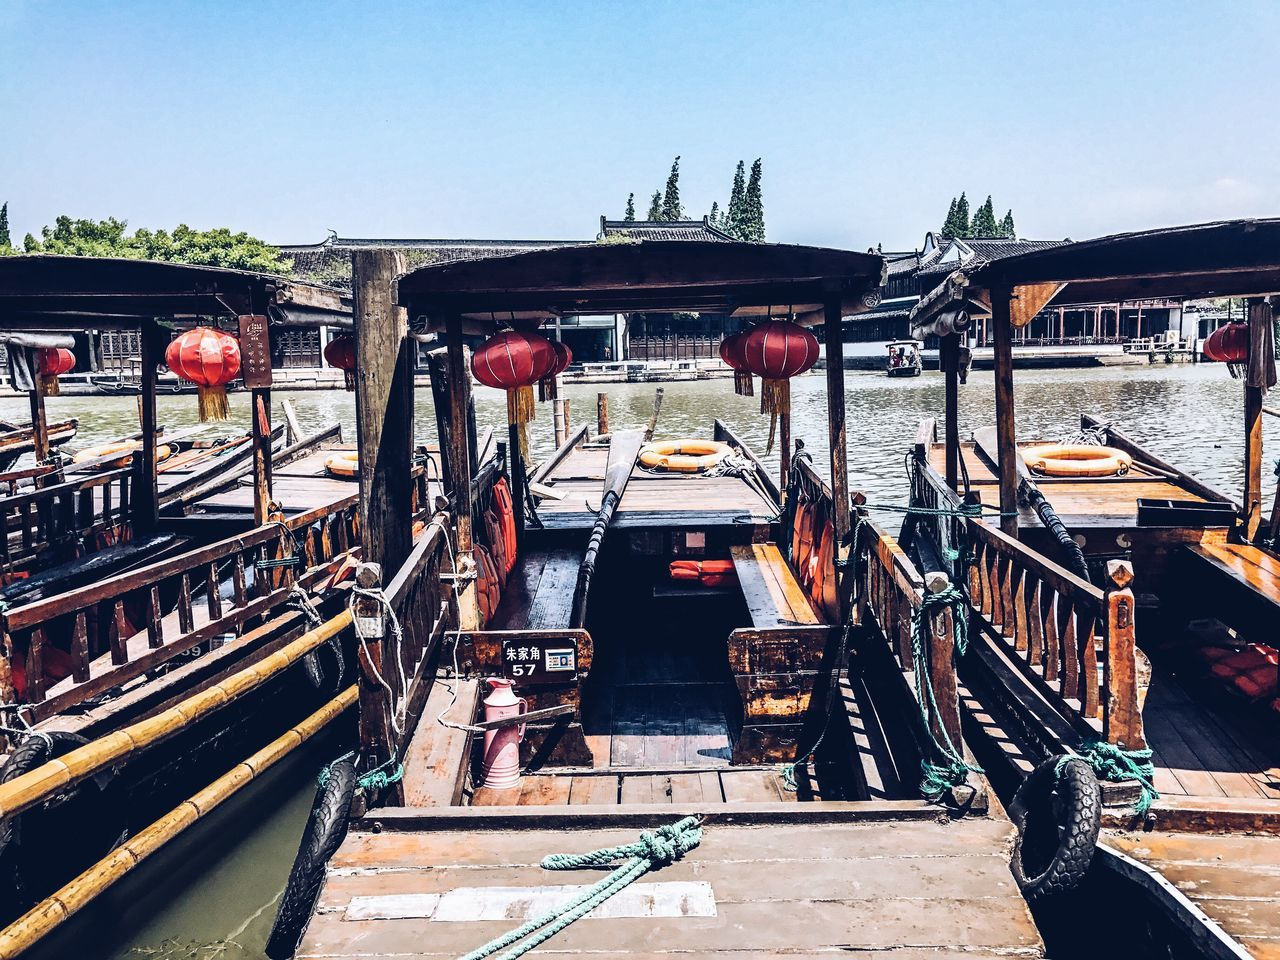 River city of Zhujiajiao Transportation Mode Of Transport No People Outdoors Sky Boats Water Waterfront China Shanghai Travel Travel Destinations Travel Photography VSCO Lightroom Day Clear Sky Chinese EyeEmNewHere First Eyeem Photo EyeEmNewHere